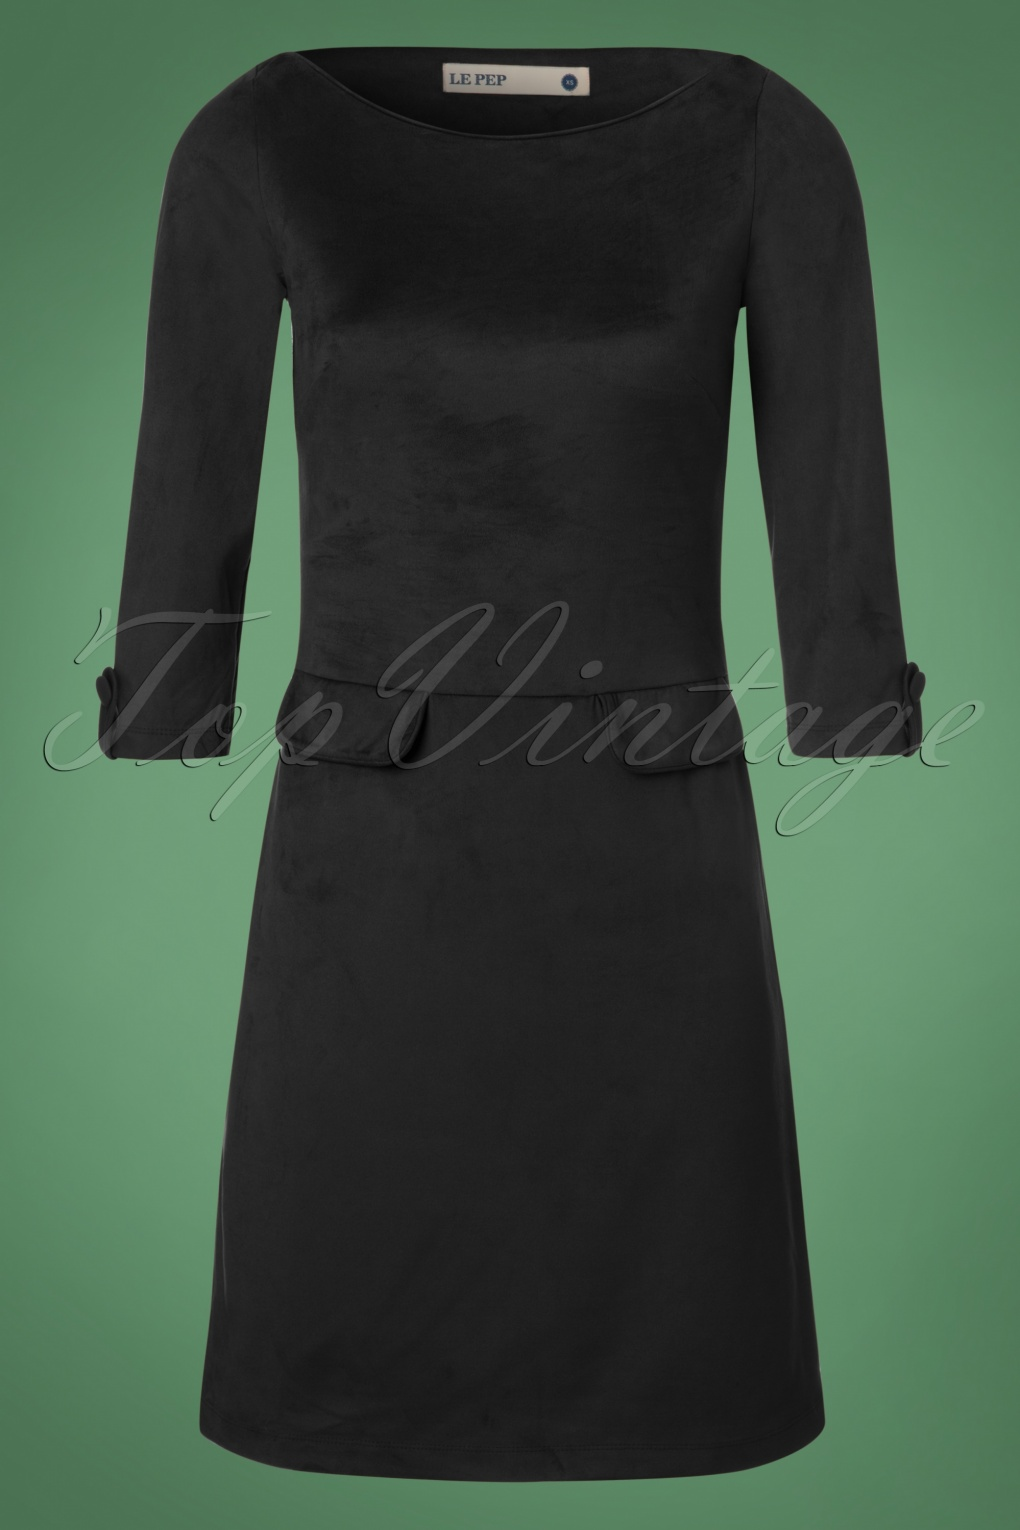 Vintage Inspired Cocktail Dresses, Party Dresses 60s Dallin Suedine Dress in Black £98.07 AT vintagedancer.com